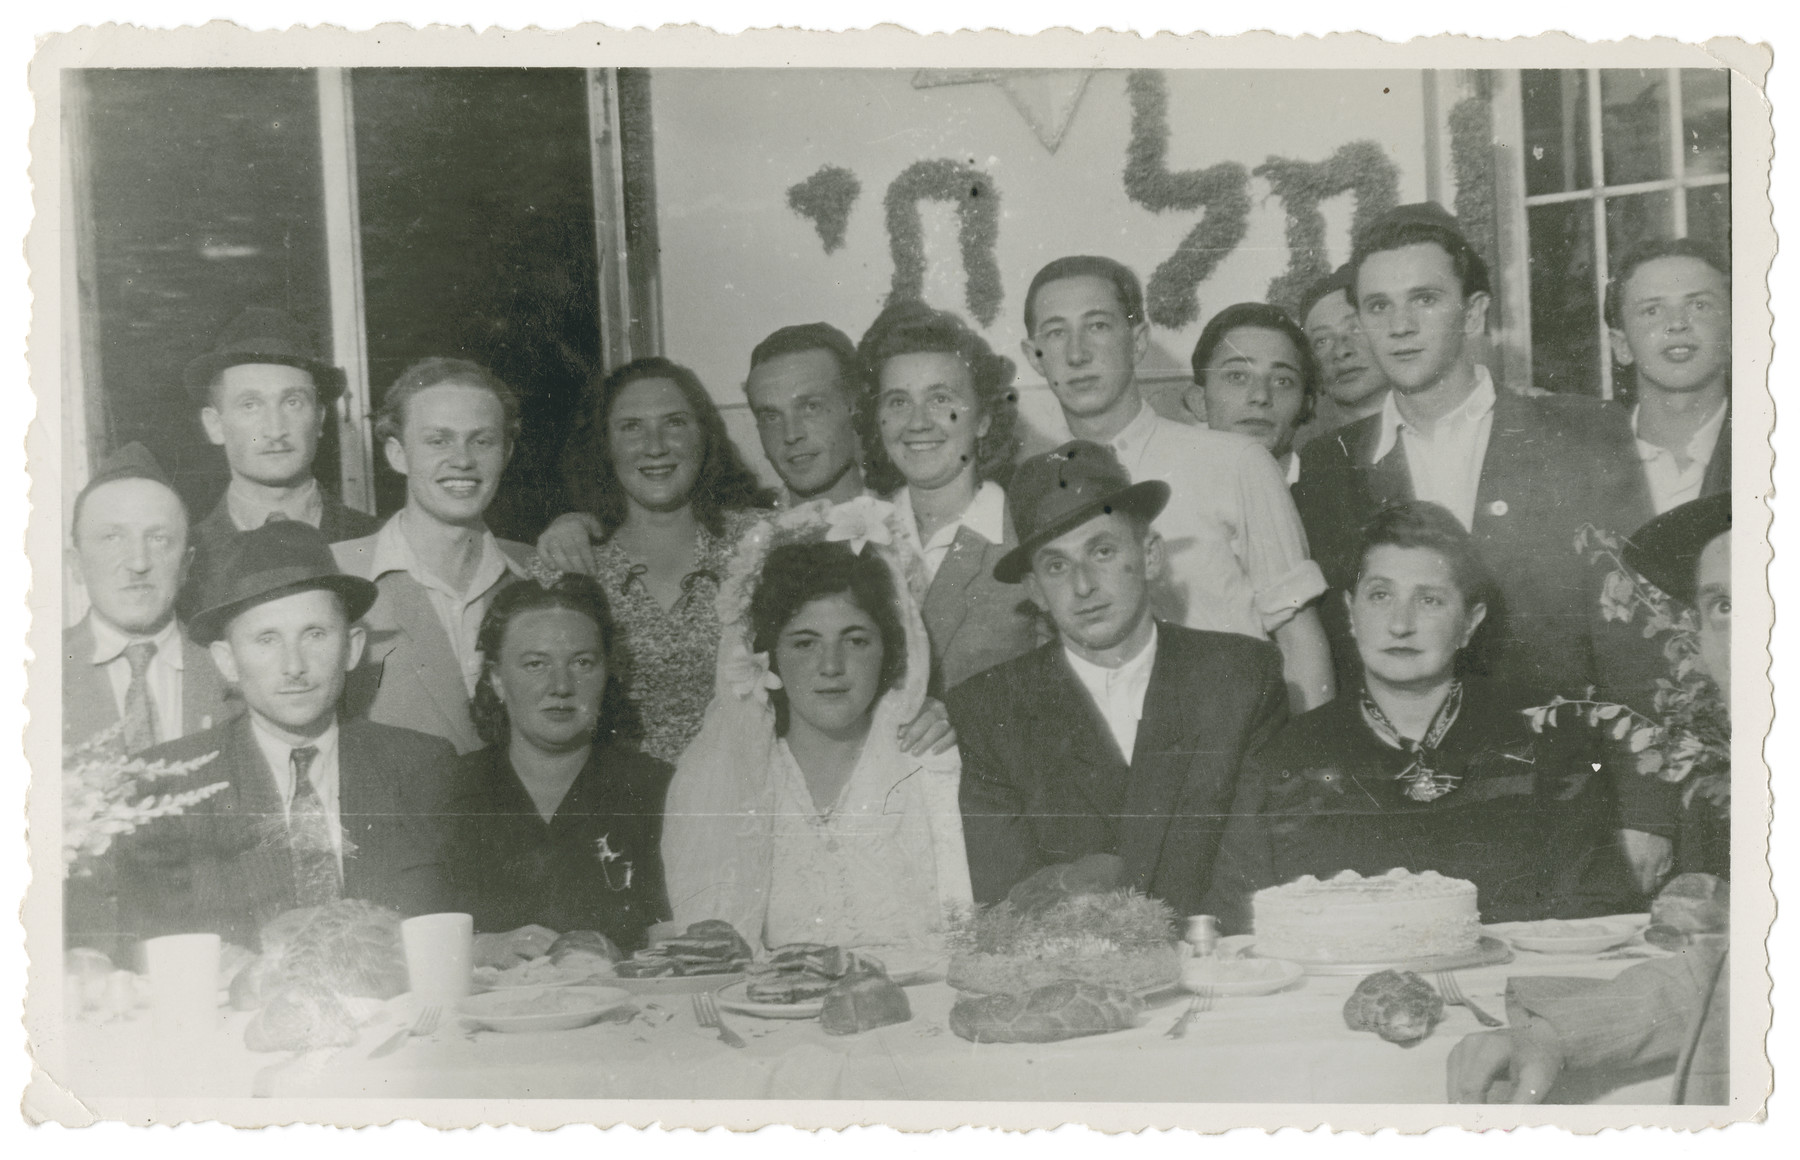 Jewish displaced persons celebrate the marriage of Ruchel Gruenberg and Hershel Kirschner.   Lenke Gruenberg is standing third from the left in the back.  Chaim (Deszo)  Guttman is pictured on the first row to the left of Ruchel with the hat. His wife, Yolanda (Yoli) Rotter Guttman, is directly to the left of Ruchel.   The sign on the back reads Tel Chai, one of the mottoes of the Betar Zionist movement.